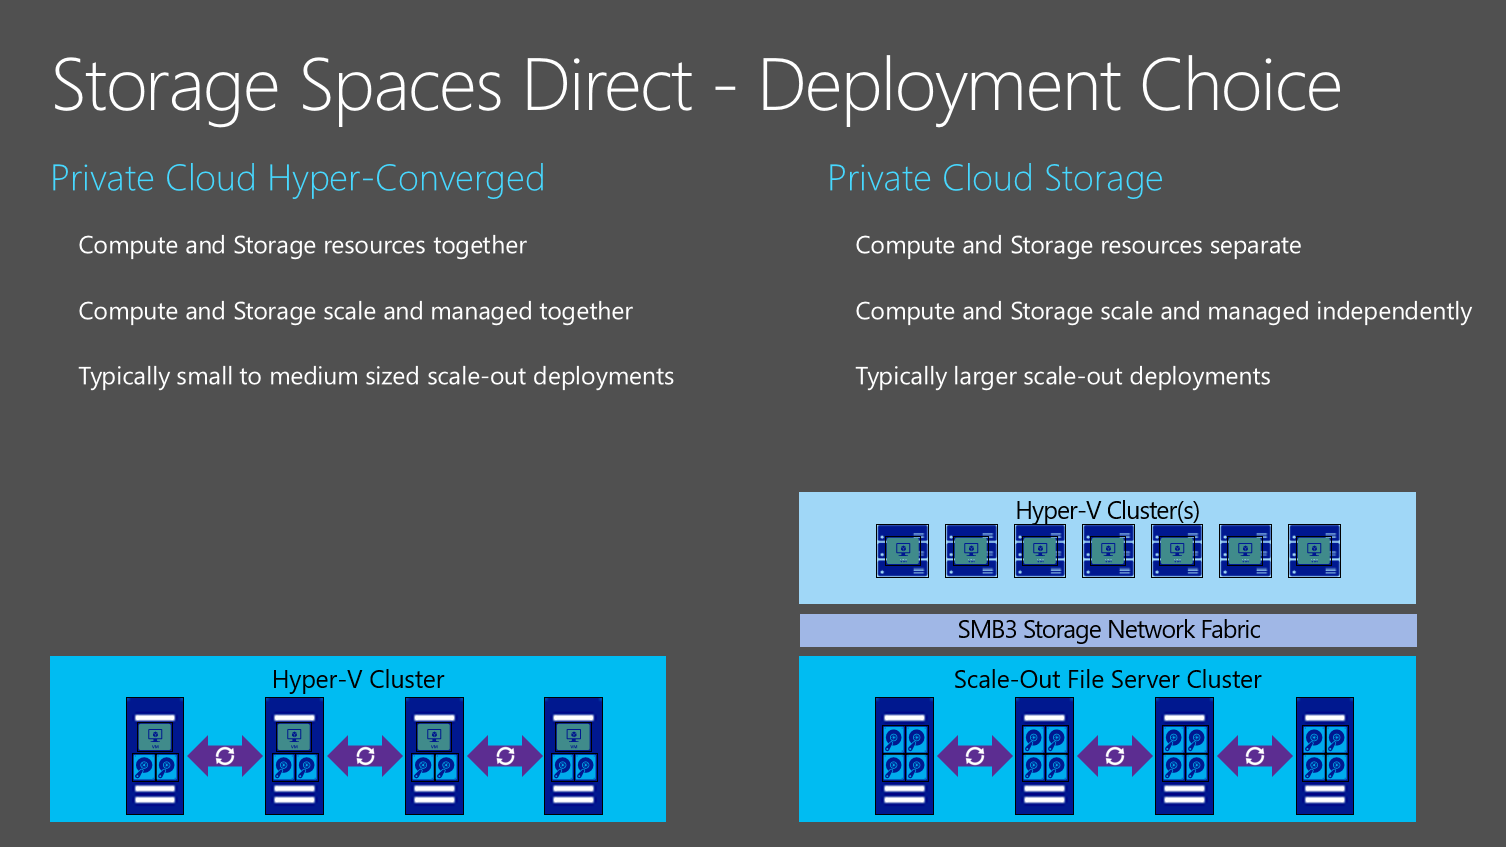 Storage Spaces Direct deployment choice